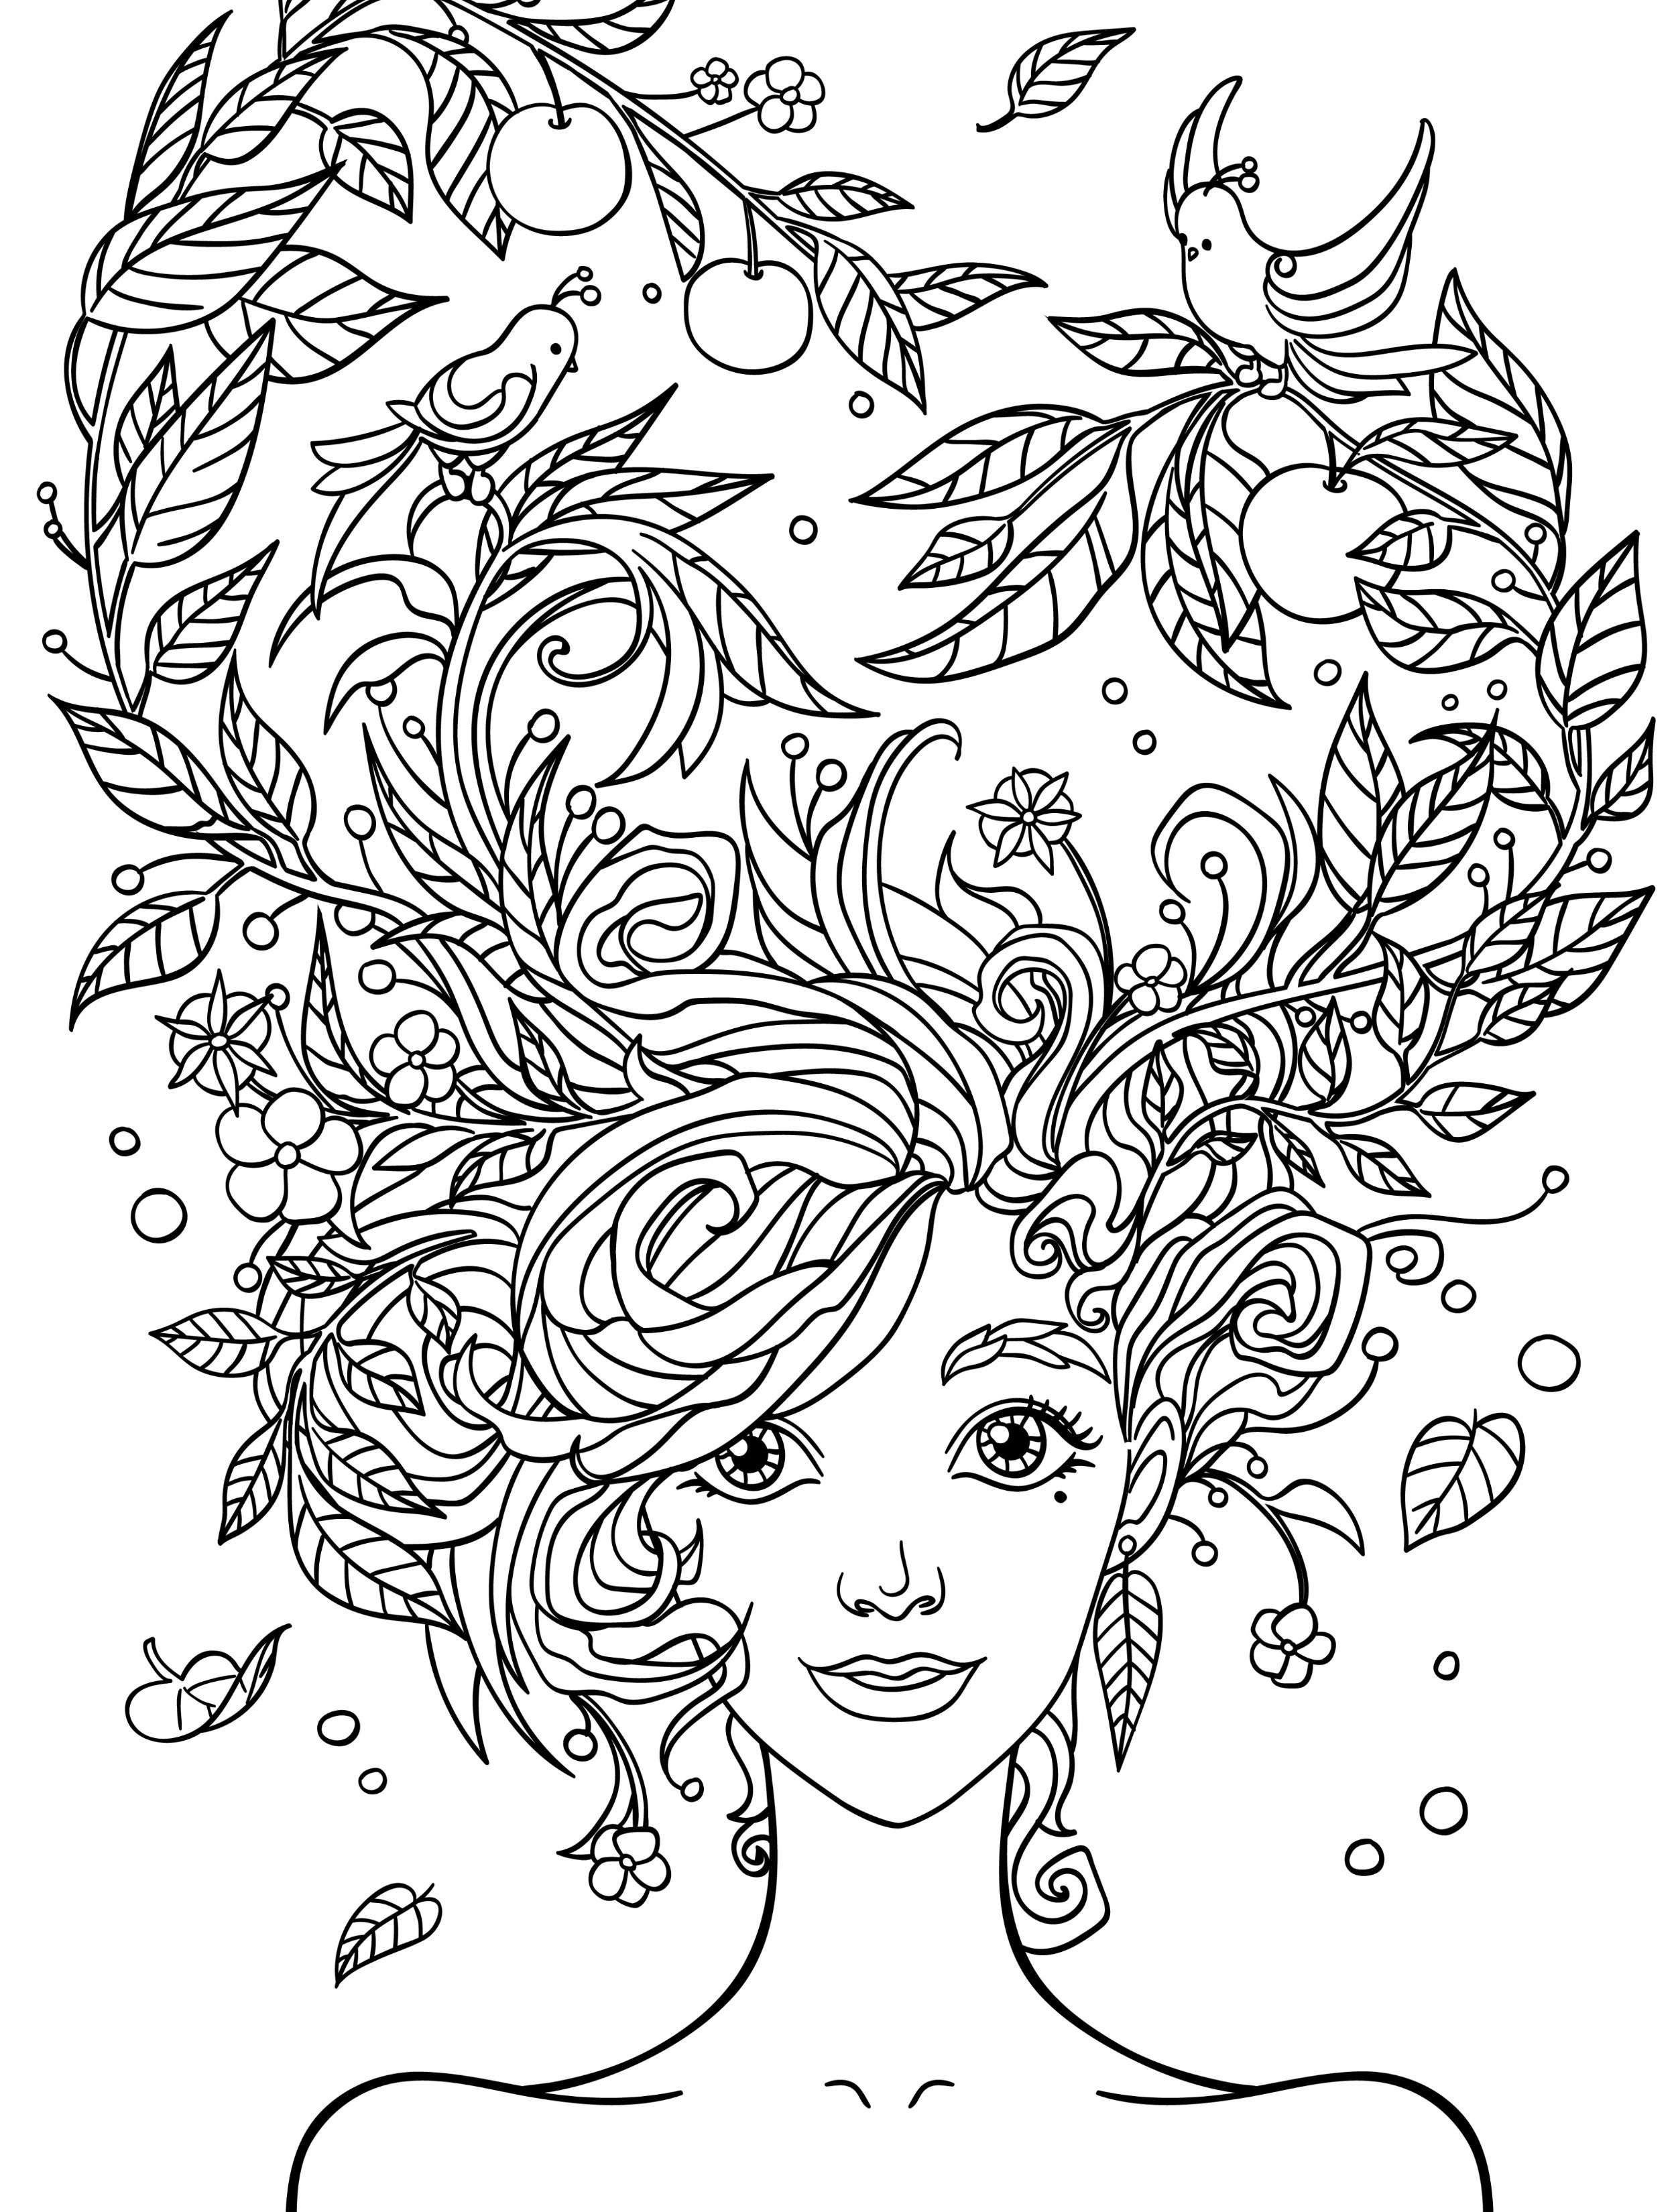 24 Coloring Pages to Color Online for Free for Adults Collections ...